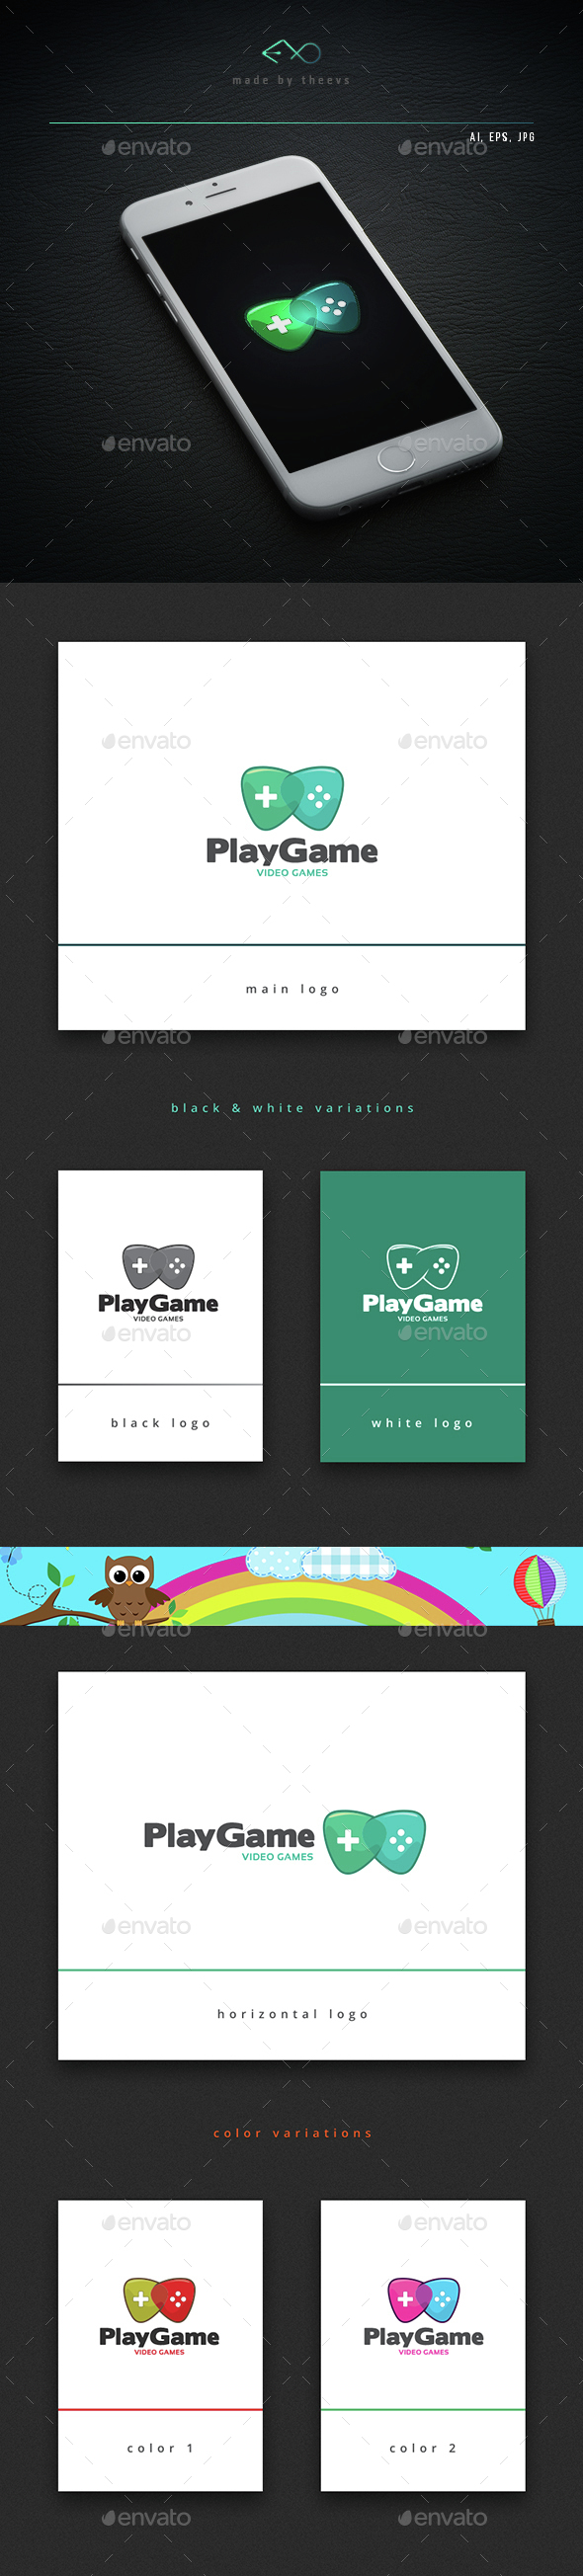 Playgame - Vector Abstract